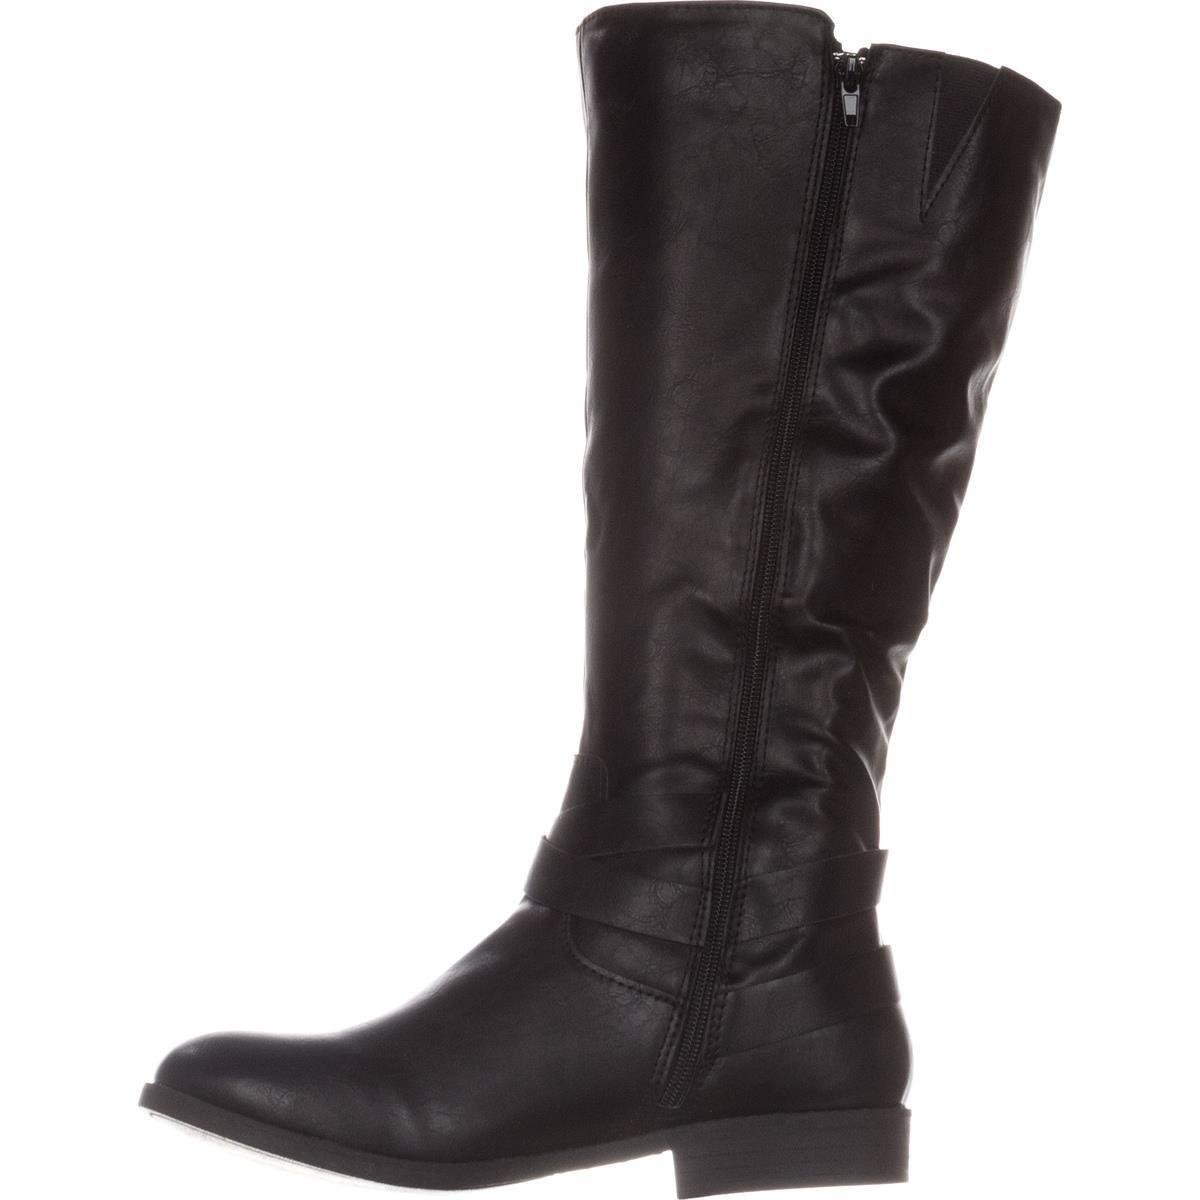 Style /& Co Womens Madixe Closed Toe Knee High Fashion Boots